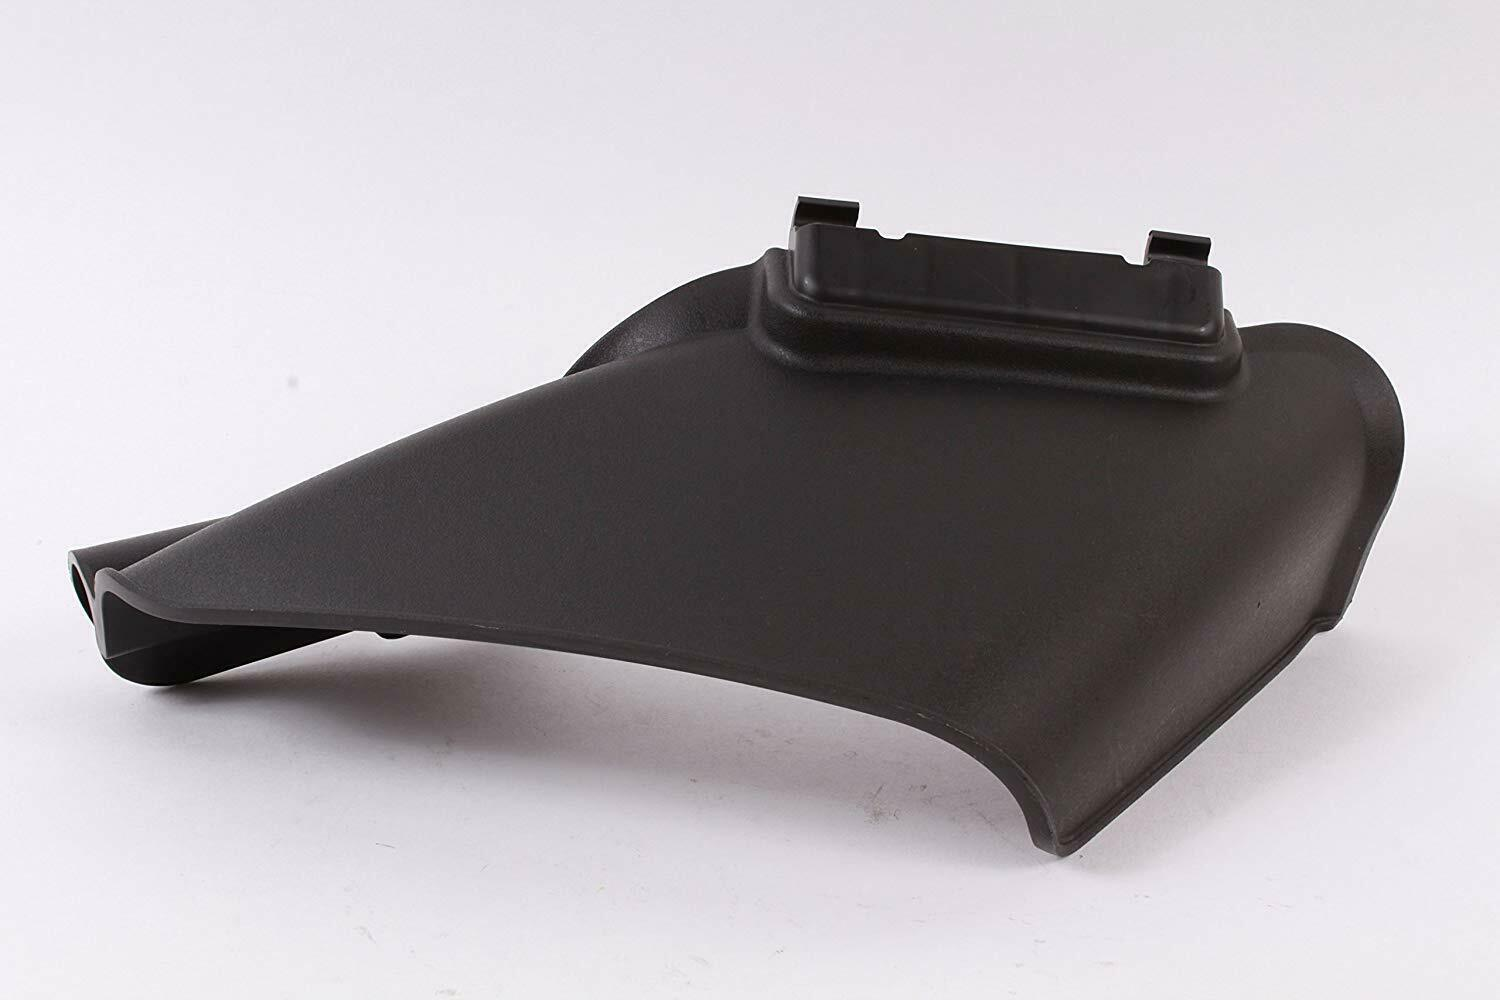 Side Discharge Chute Cover for MTD Cub Cadet Troy-Bilt Lawn